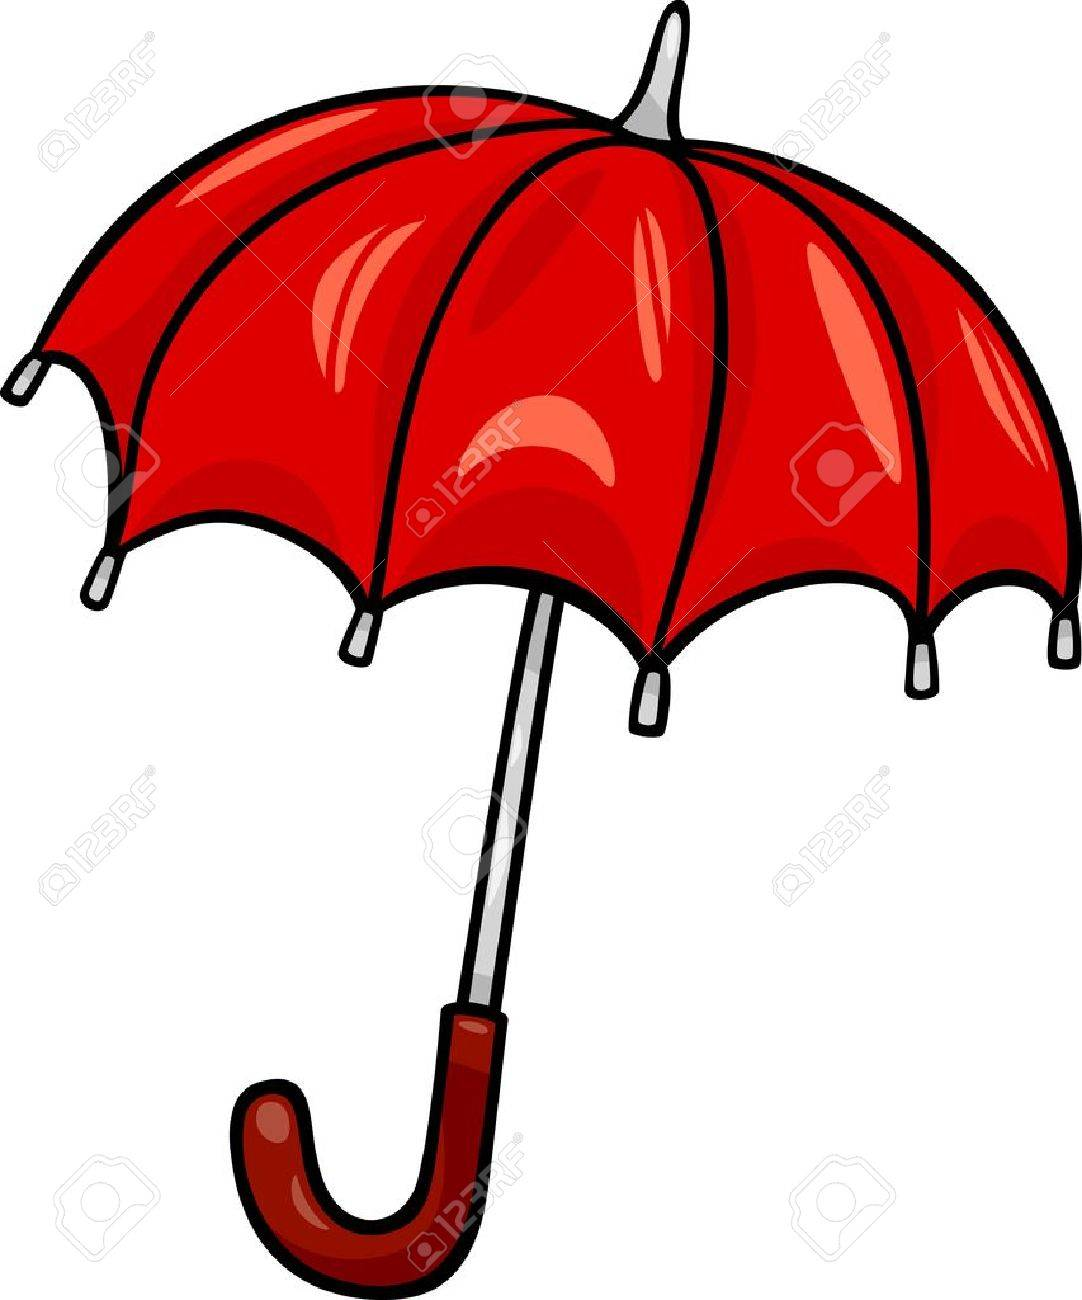 Cartoon Illustration of Red Umbrella Clip Art.